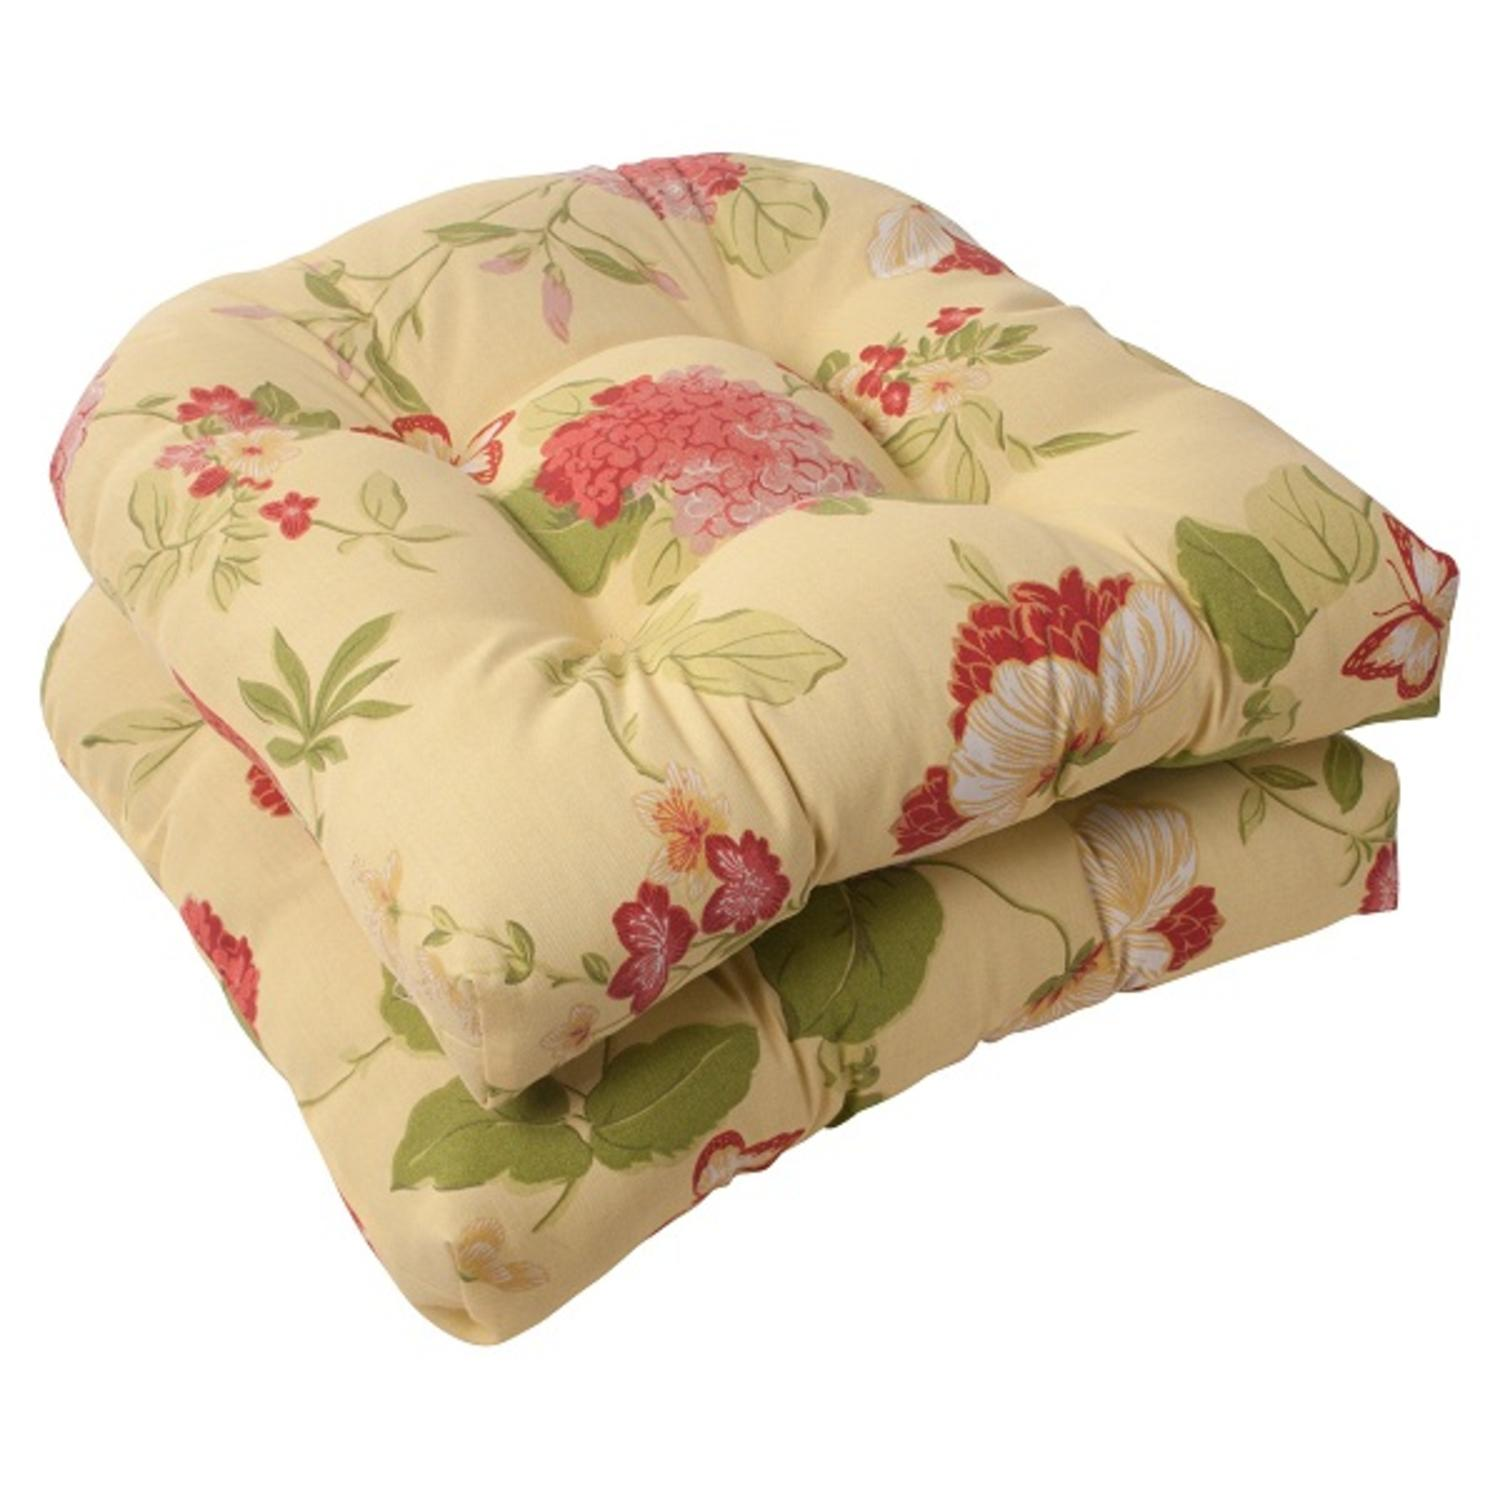 Set of 2 Solarium Bashful Blossom Outdoor Tufted Patio Furniture Chair Cushions